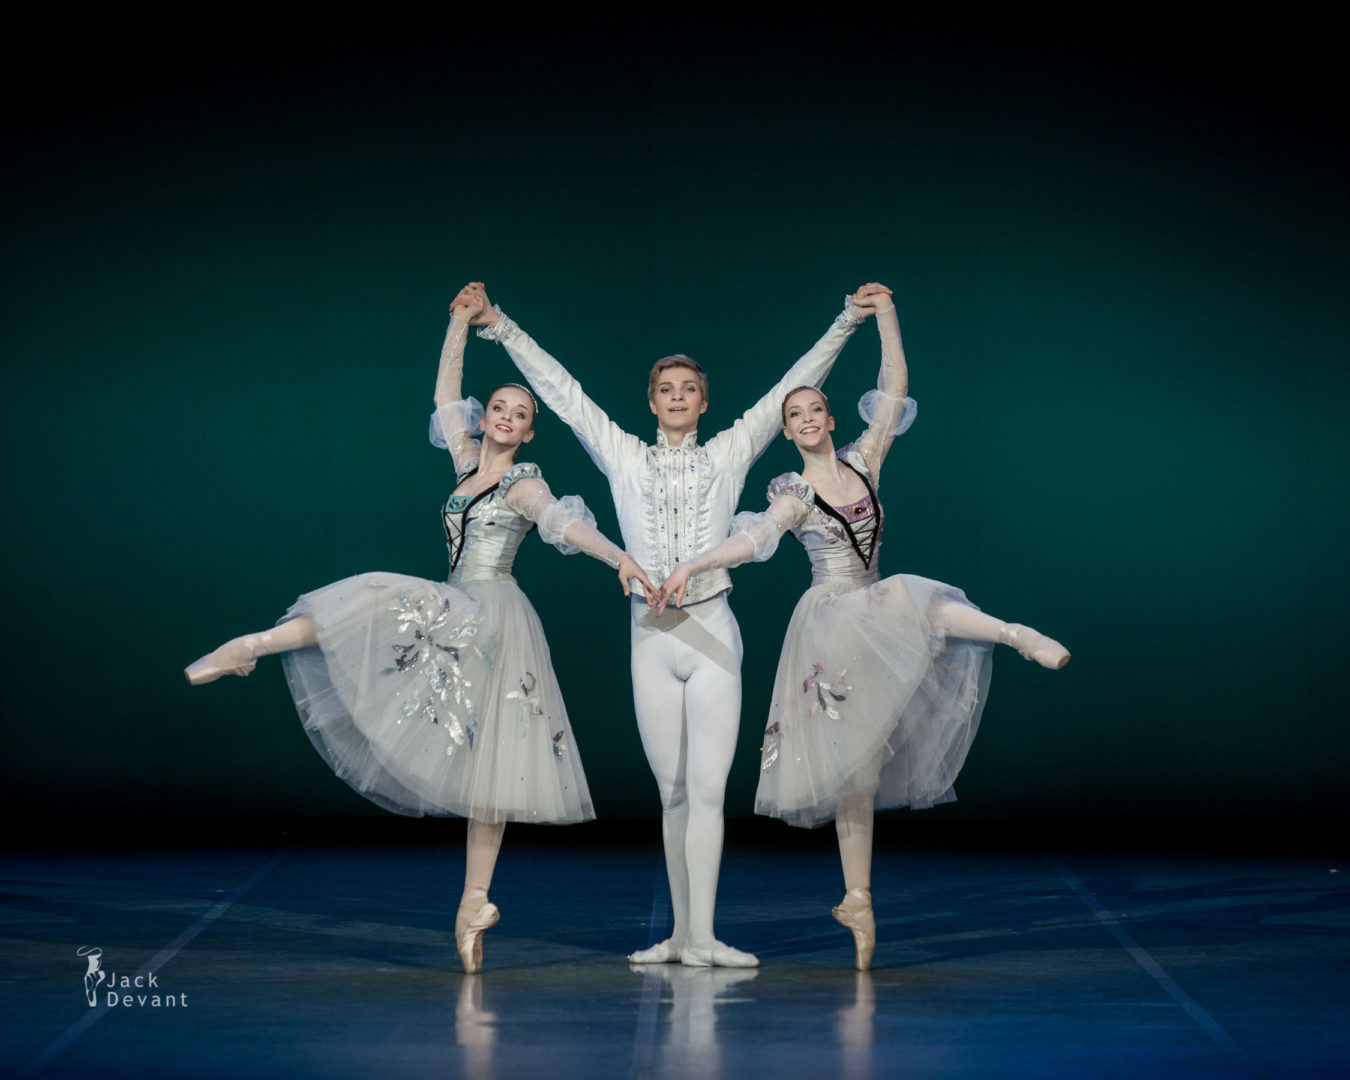 Carolina Sumarok, Karina Laura Leshkin and Taras Titarenko in Swan Lake pas de trois